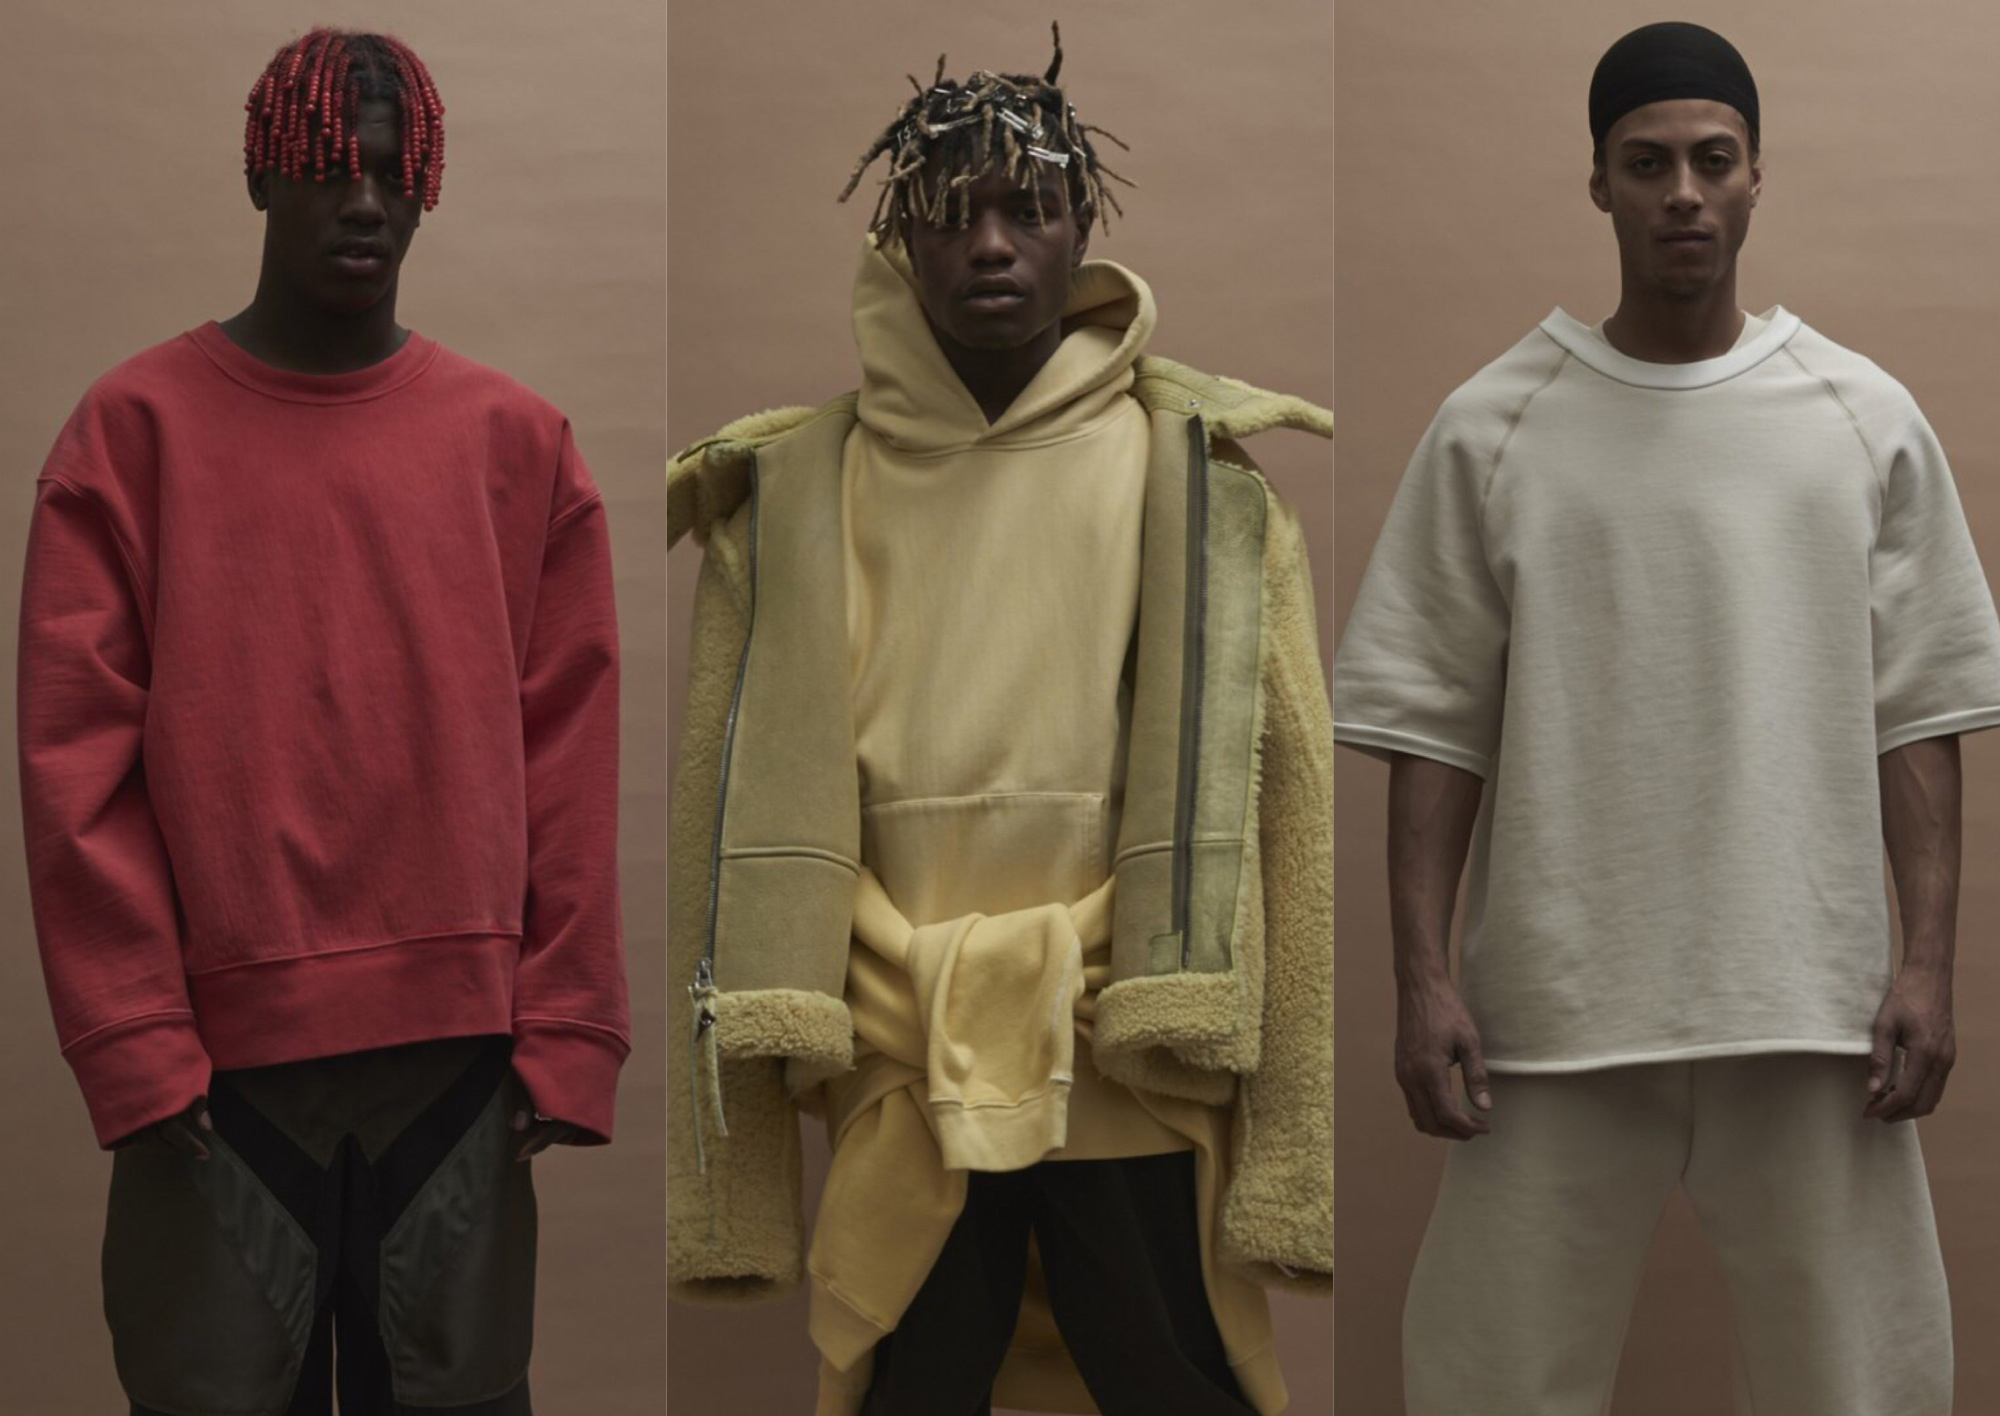 YEEZY Season 3 Fall/Winter 2016 Men's Lookbook